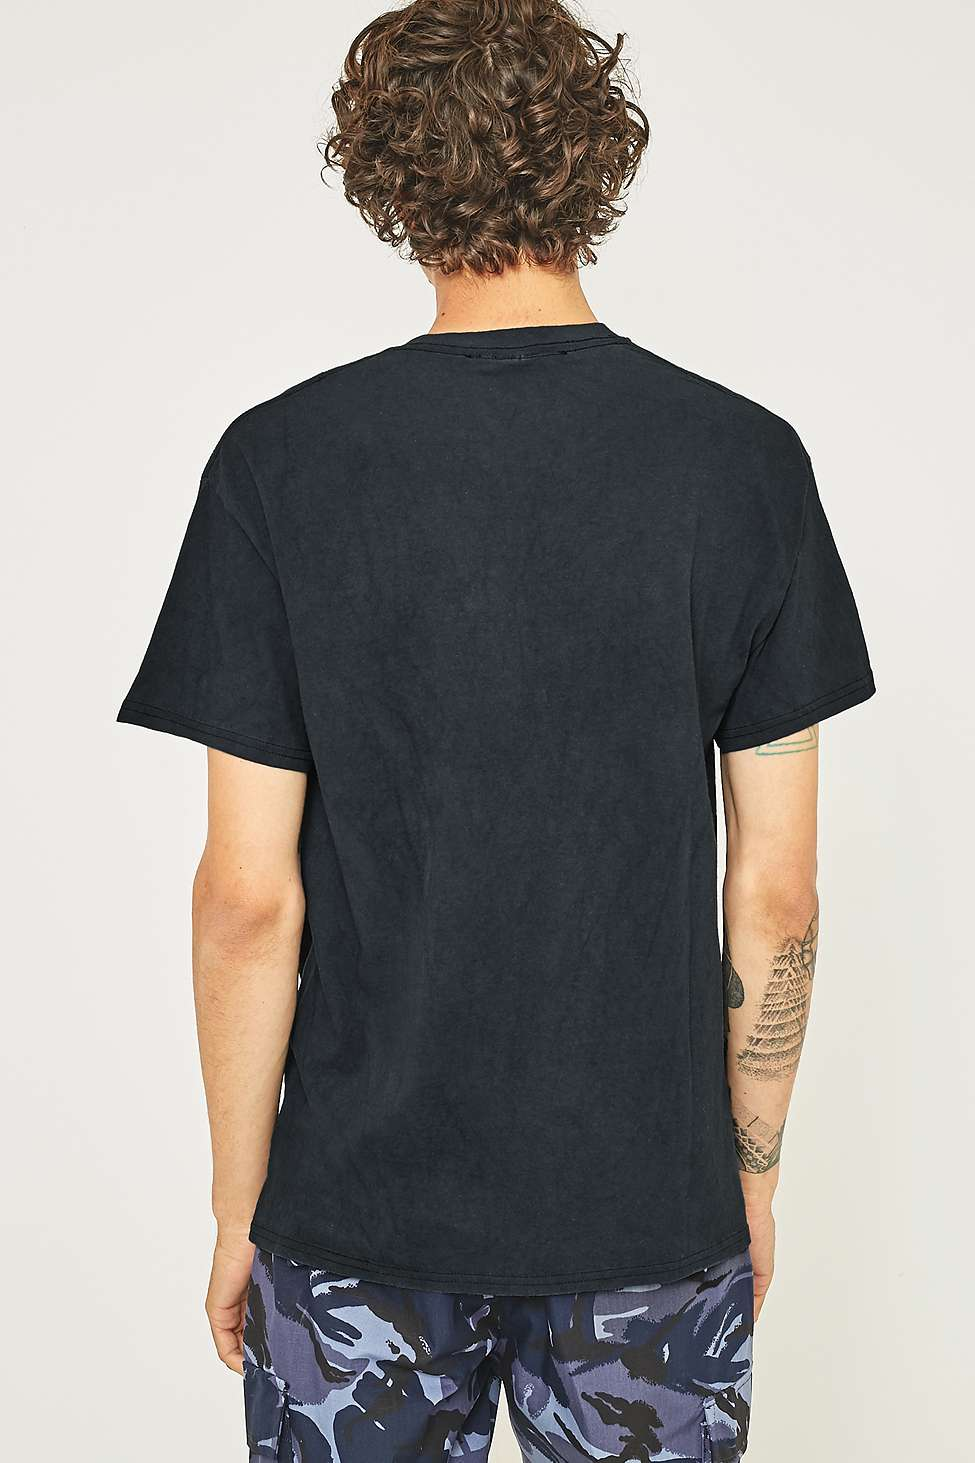 UO Oversized Washed Black T-shirt | Urban Outfitters